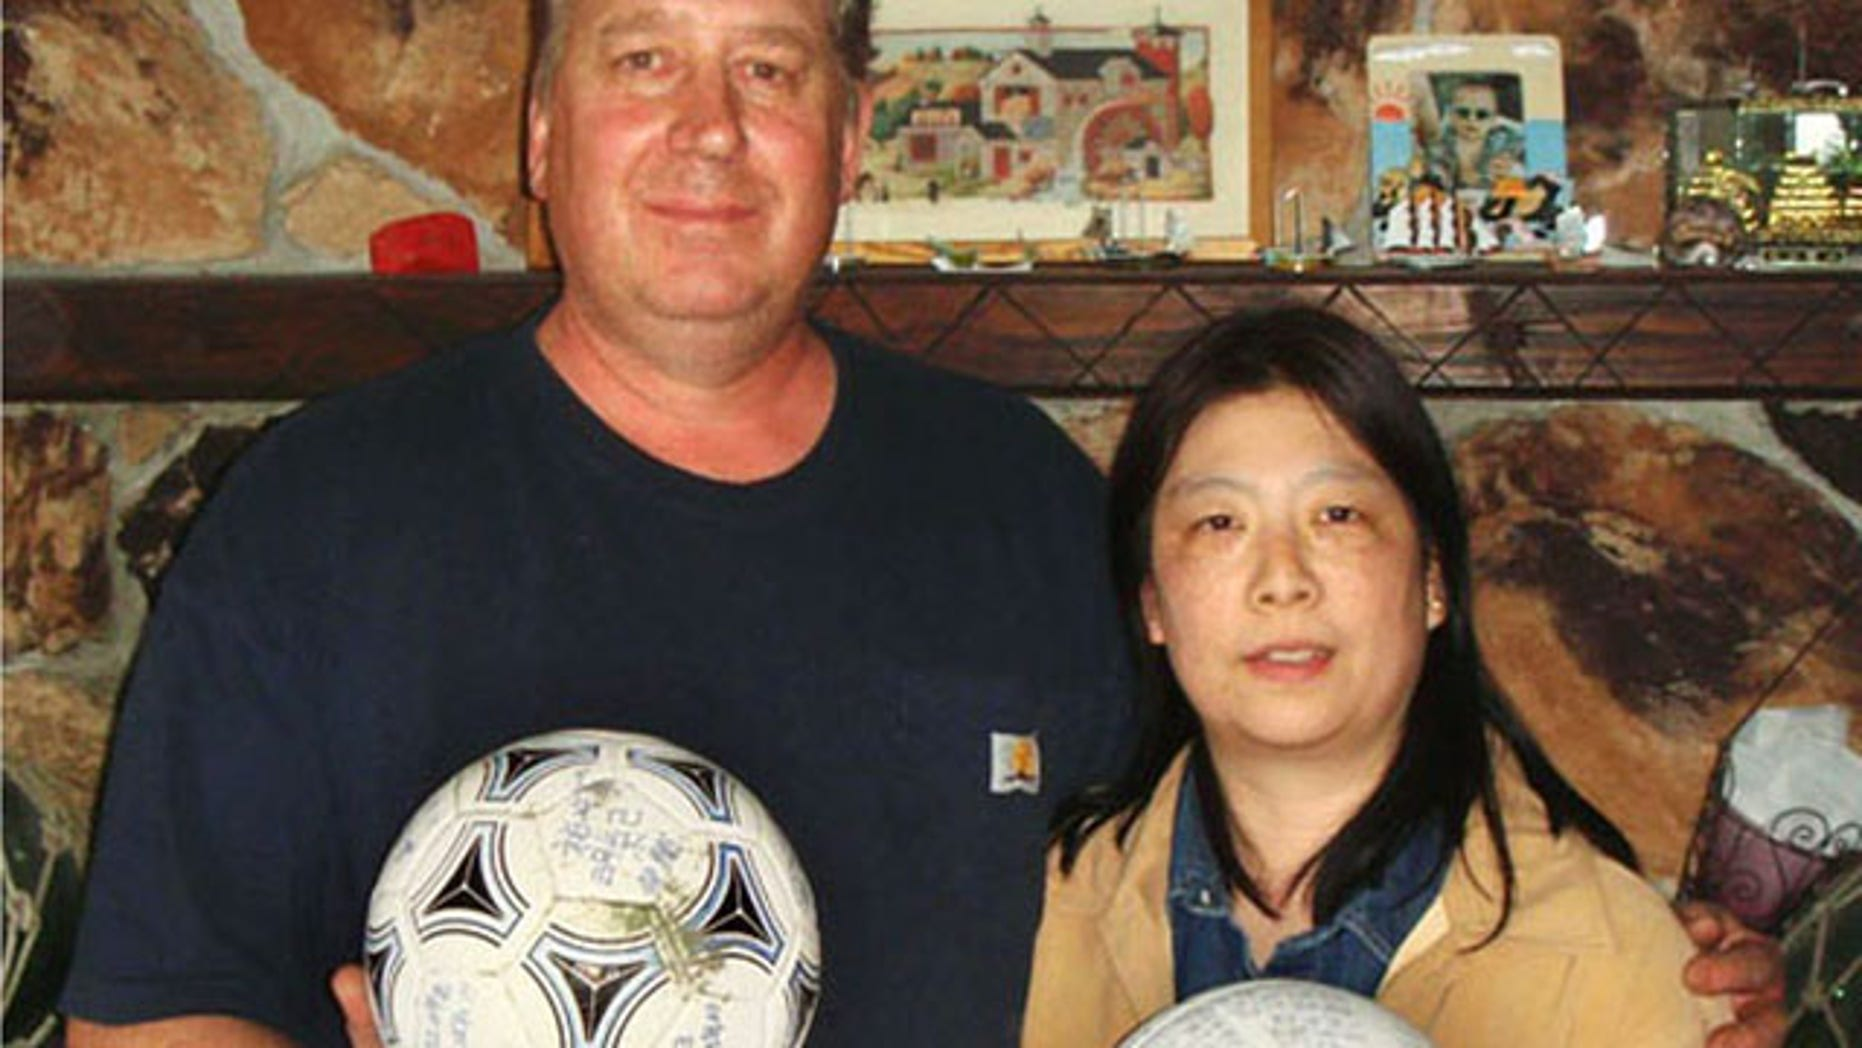 April 21, 2012: David and Yumi Baxter hold a soccer ball and a volleyball which David found, at their house in the suburbs of Anchorage, Alaska